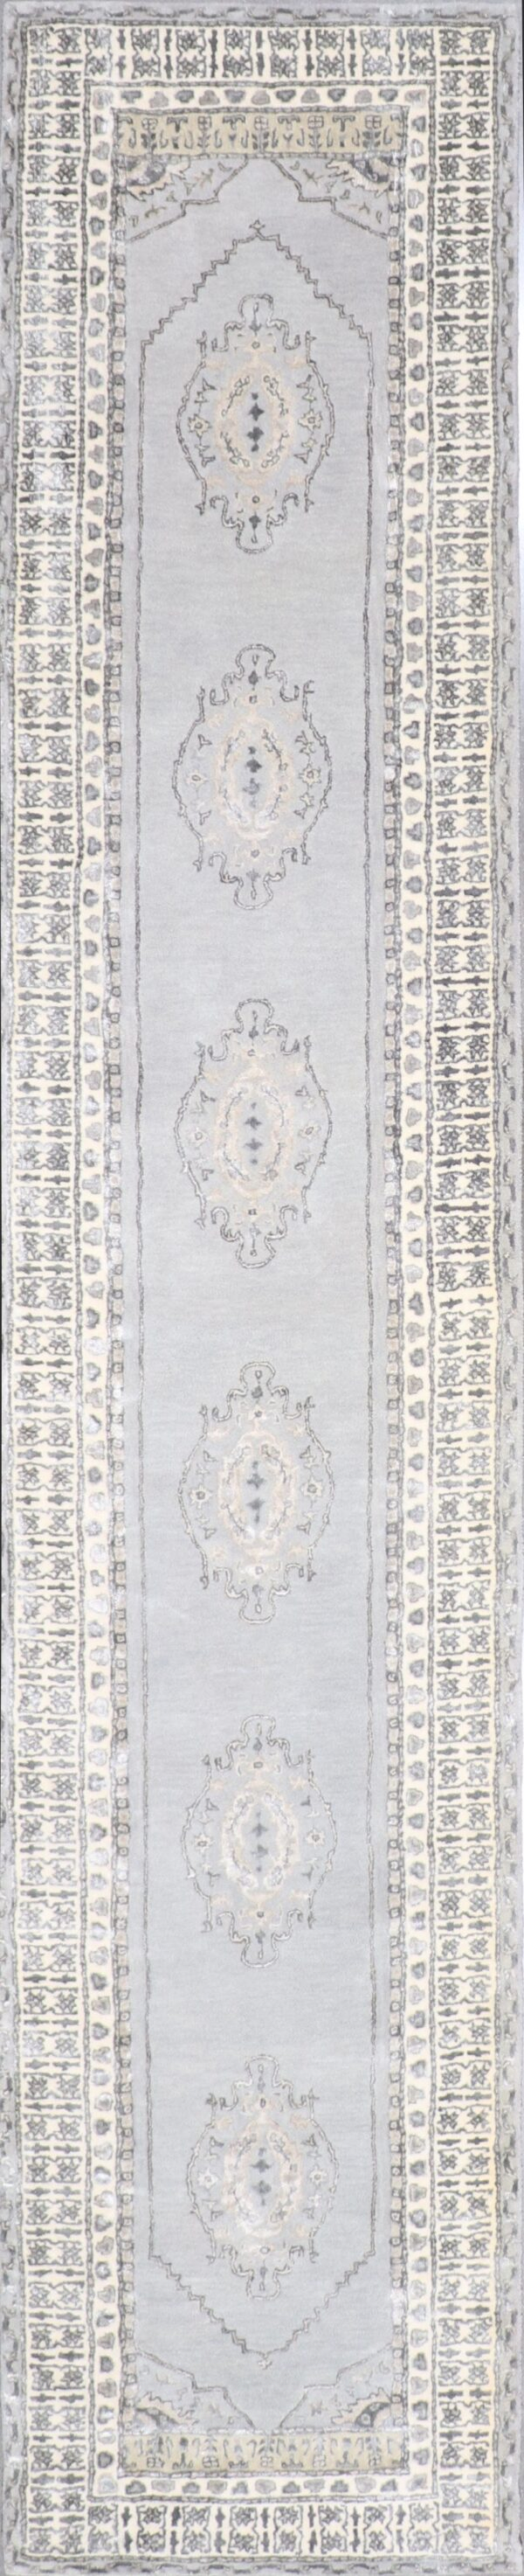 """2'9""""x14' Decorative Vintage Wool & Silk Hand-Tufted Rug - Direct Rug Import 